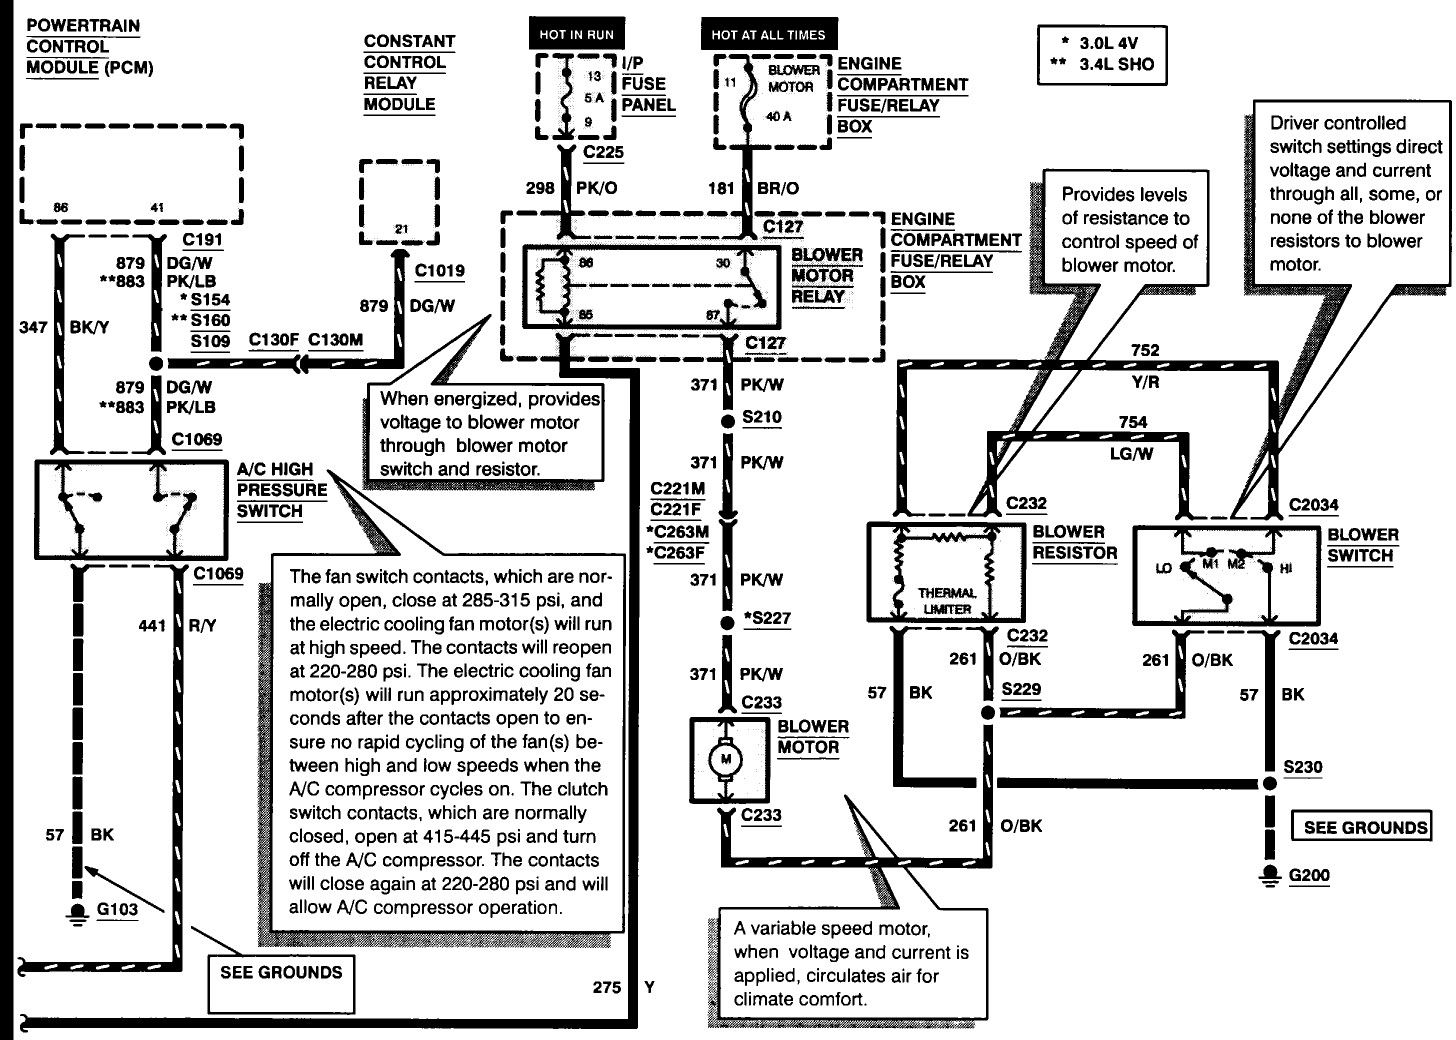 2003 Ford Mustang Wiring Diagram. 2003 ford taurus wiring